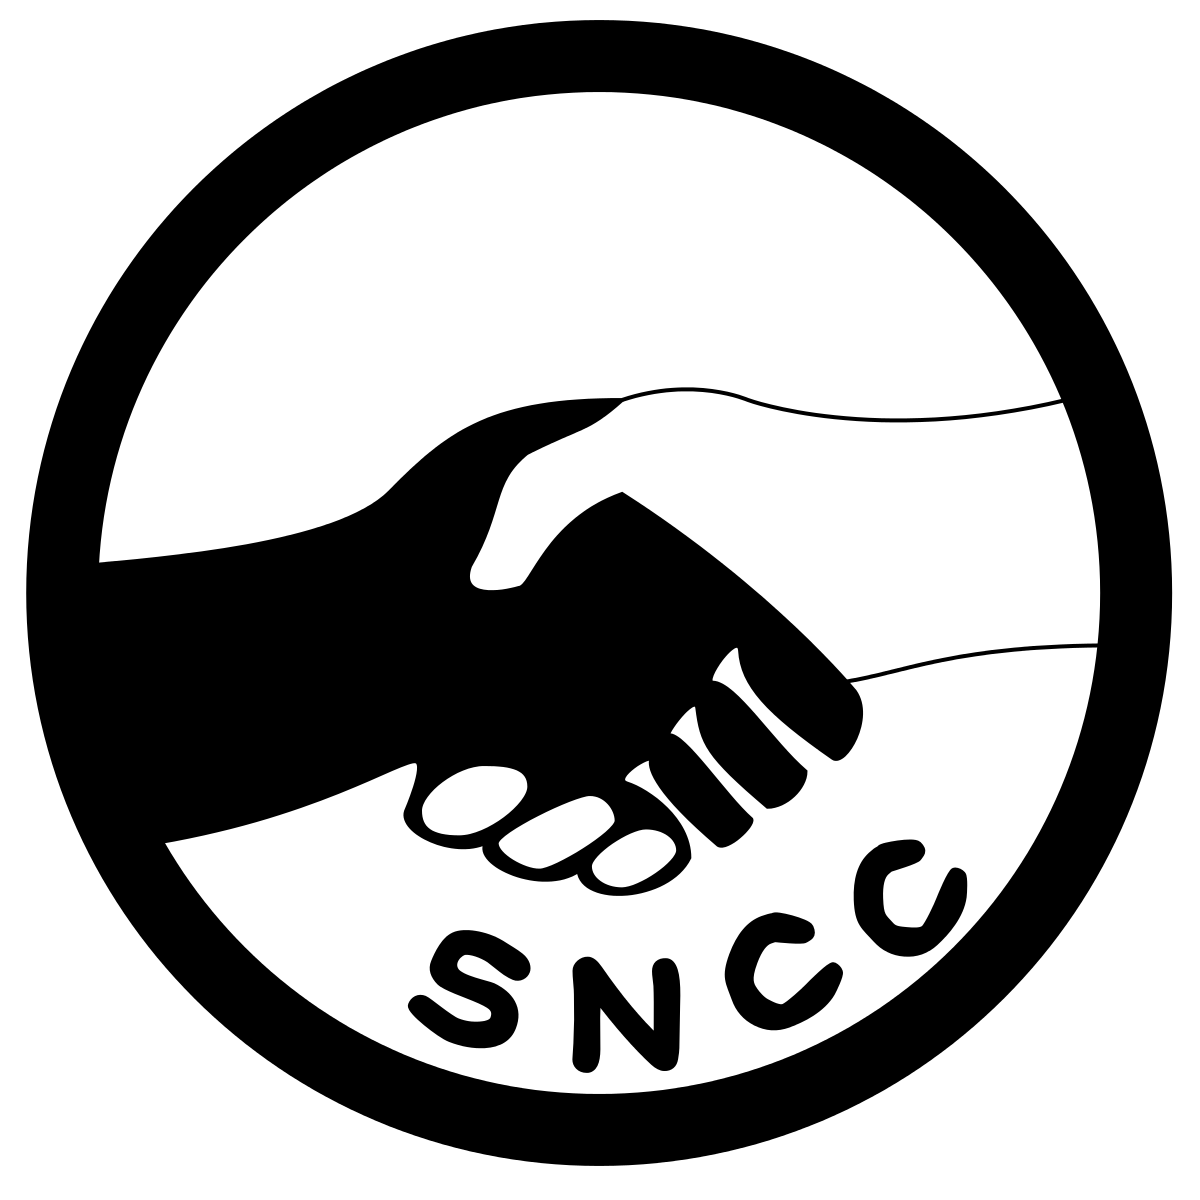 Money fist icon black white clipart prayer clipart freeuse stock Student Nonviolent Coordinating Committee - Wikipedia clipart freeuse stock